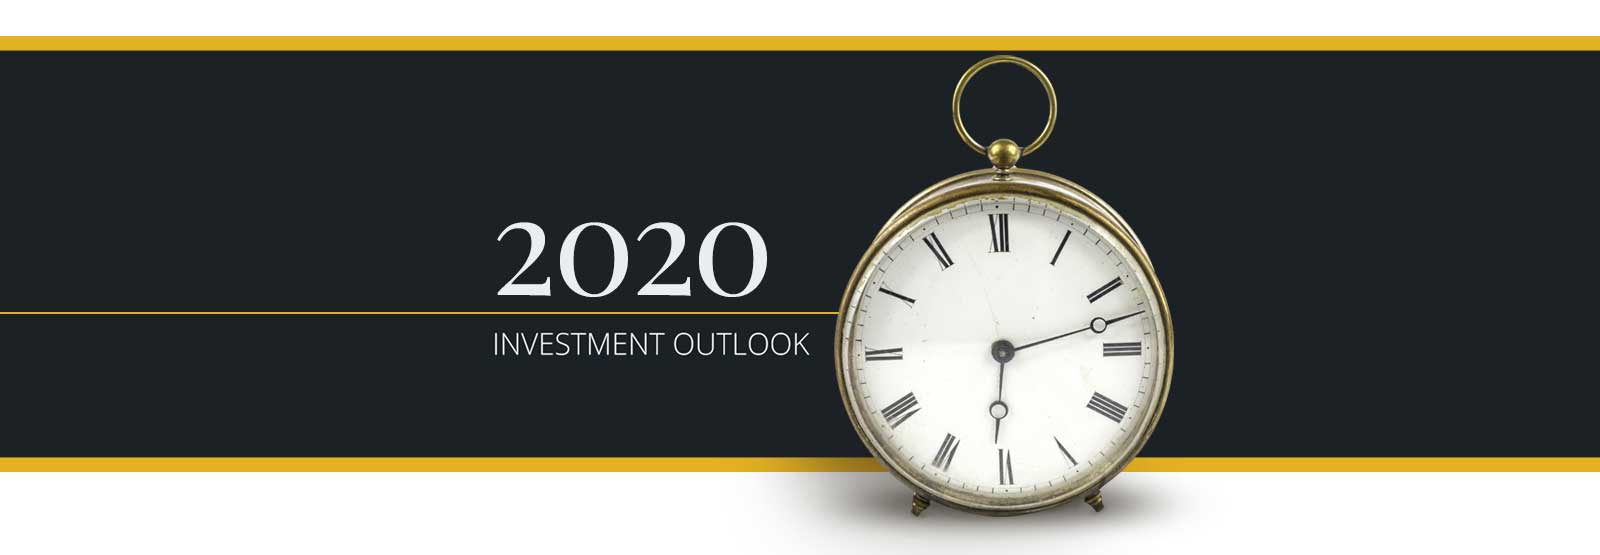 2020 Investment Outlook